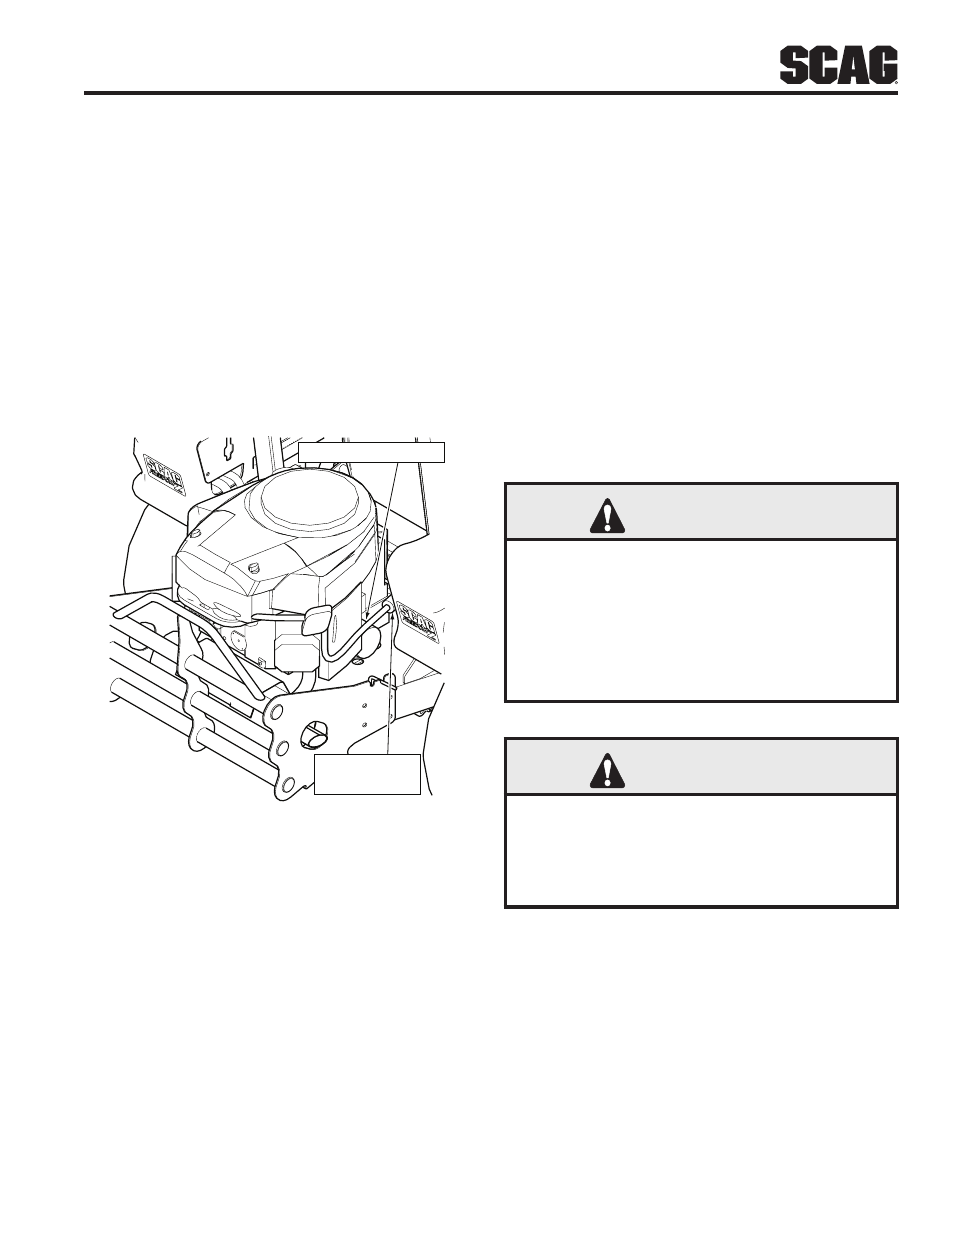 5 Engine Air Cleaner  6 Battery  Warning